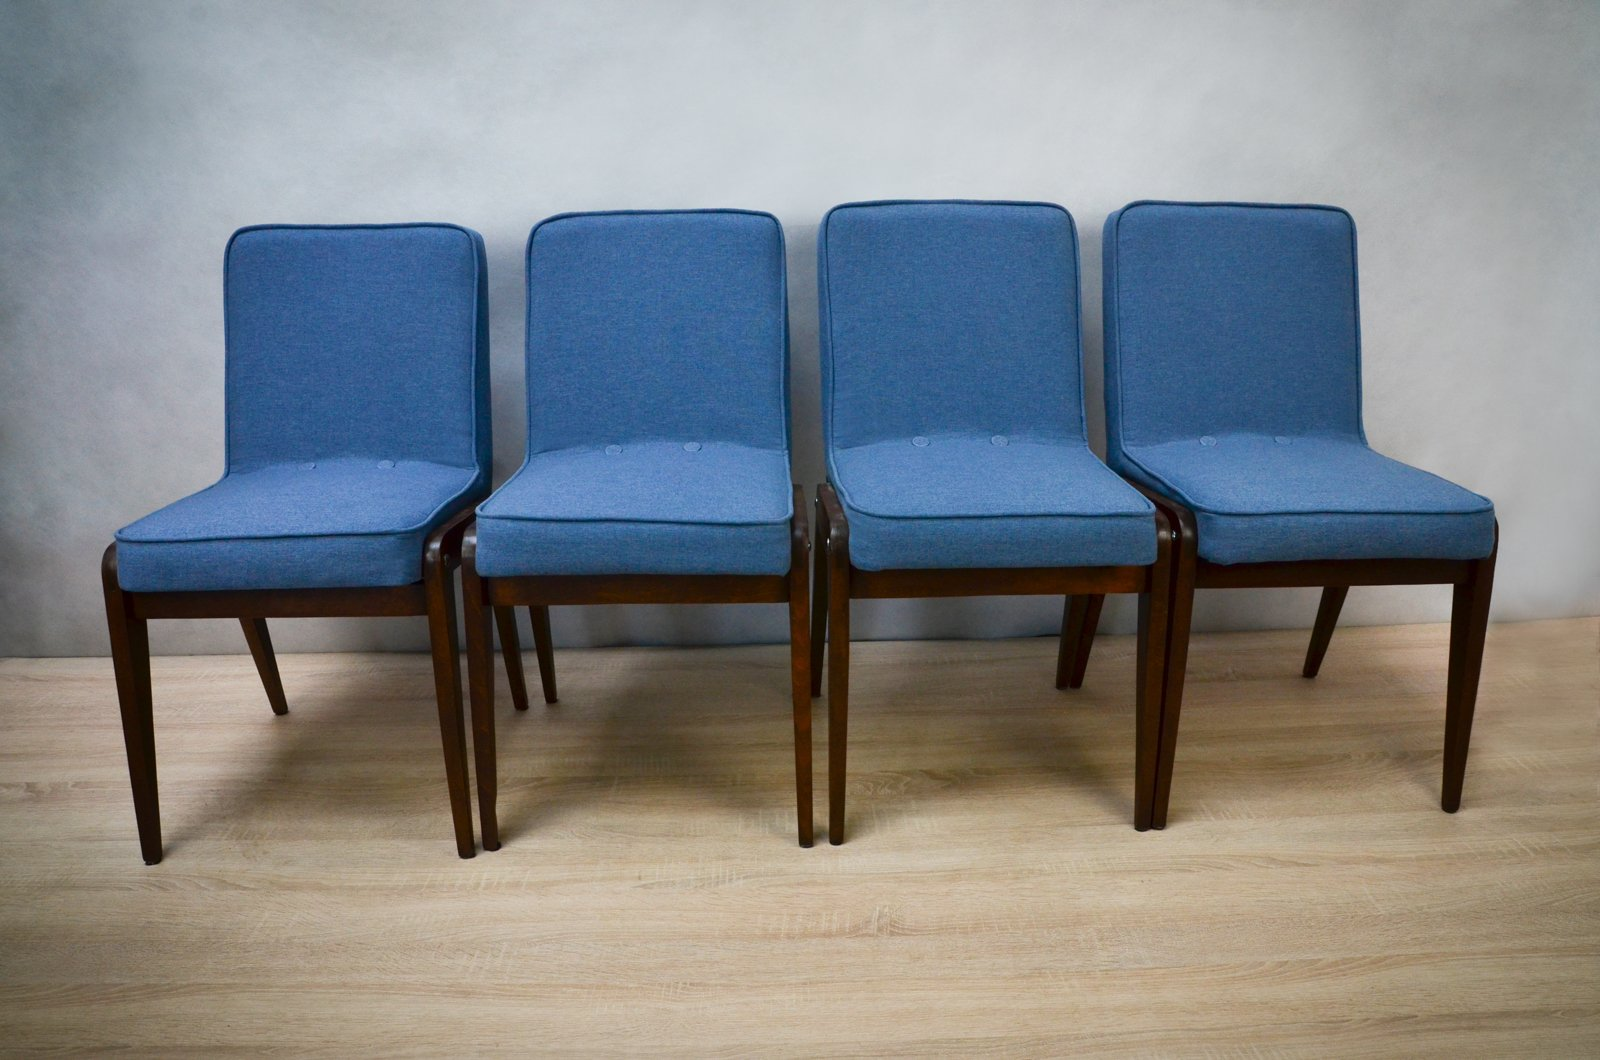 Light Blue Dining Chairs Aga Light Blue Dining Chairs By Józef Marian Chierowski